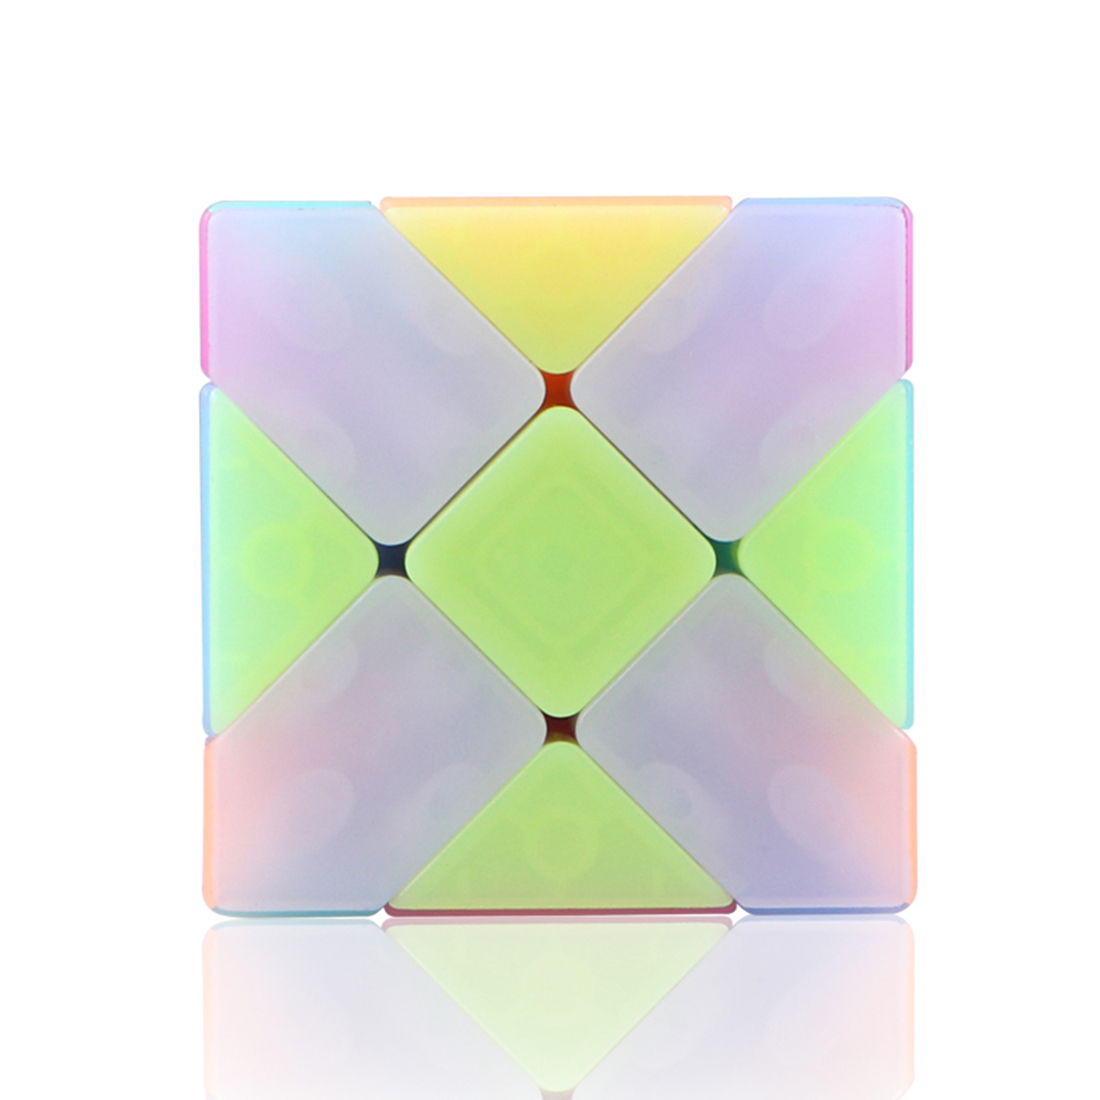 Qiyi Fisher Magic Cube Puzzle Puzzles Magic Cubes Early Educational Toy For Children New Cube  2019 - Jelly Color